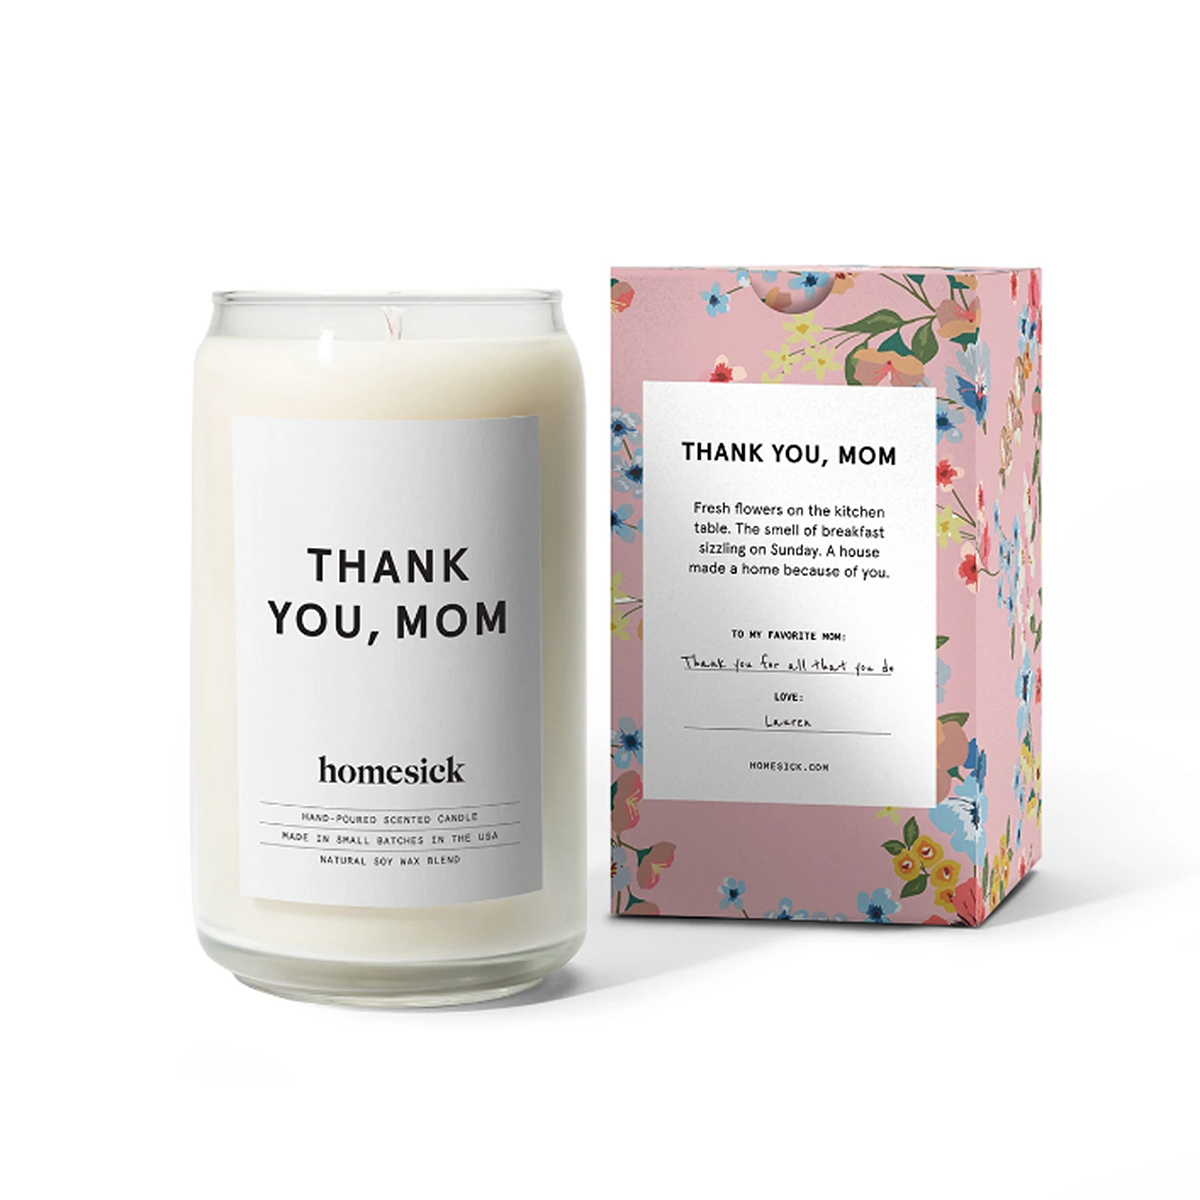 homesick-thank-you-mom-candle